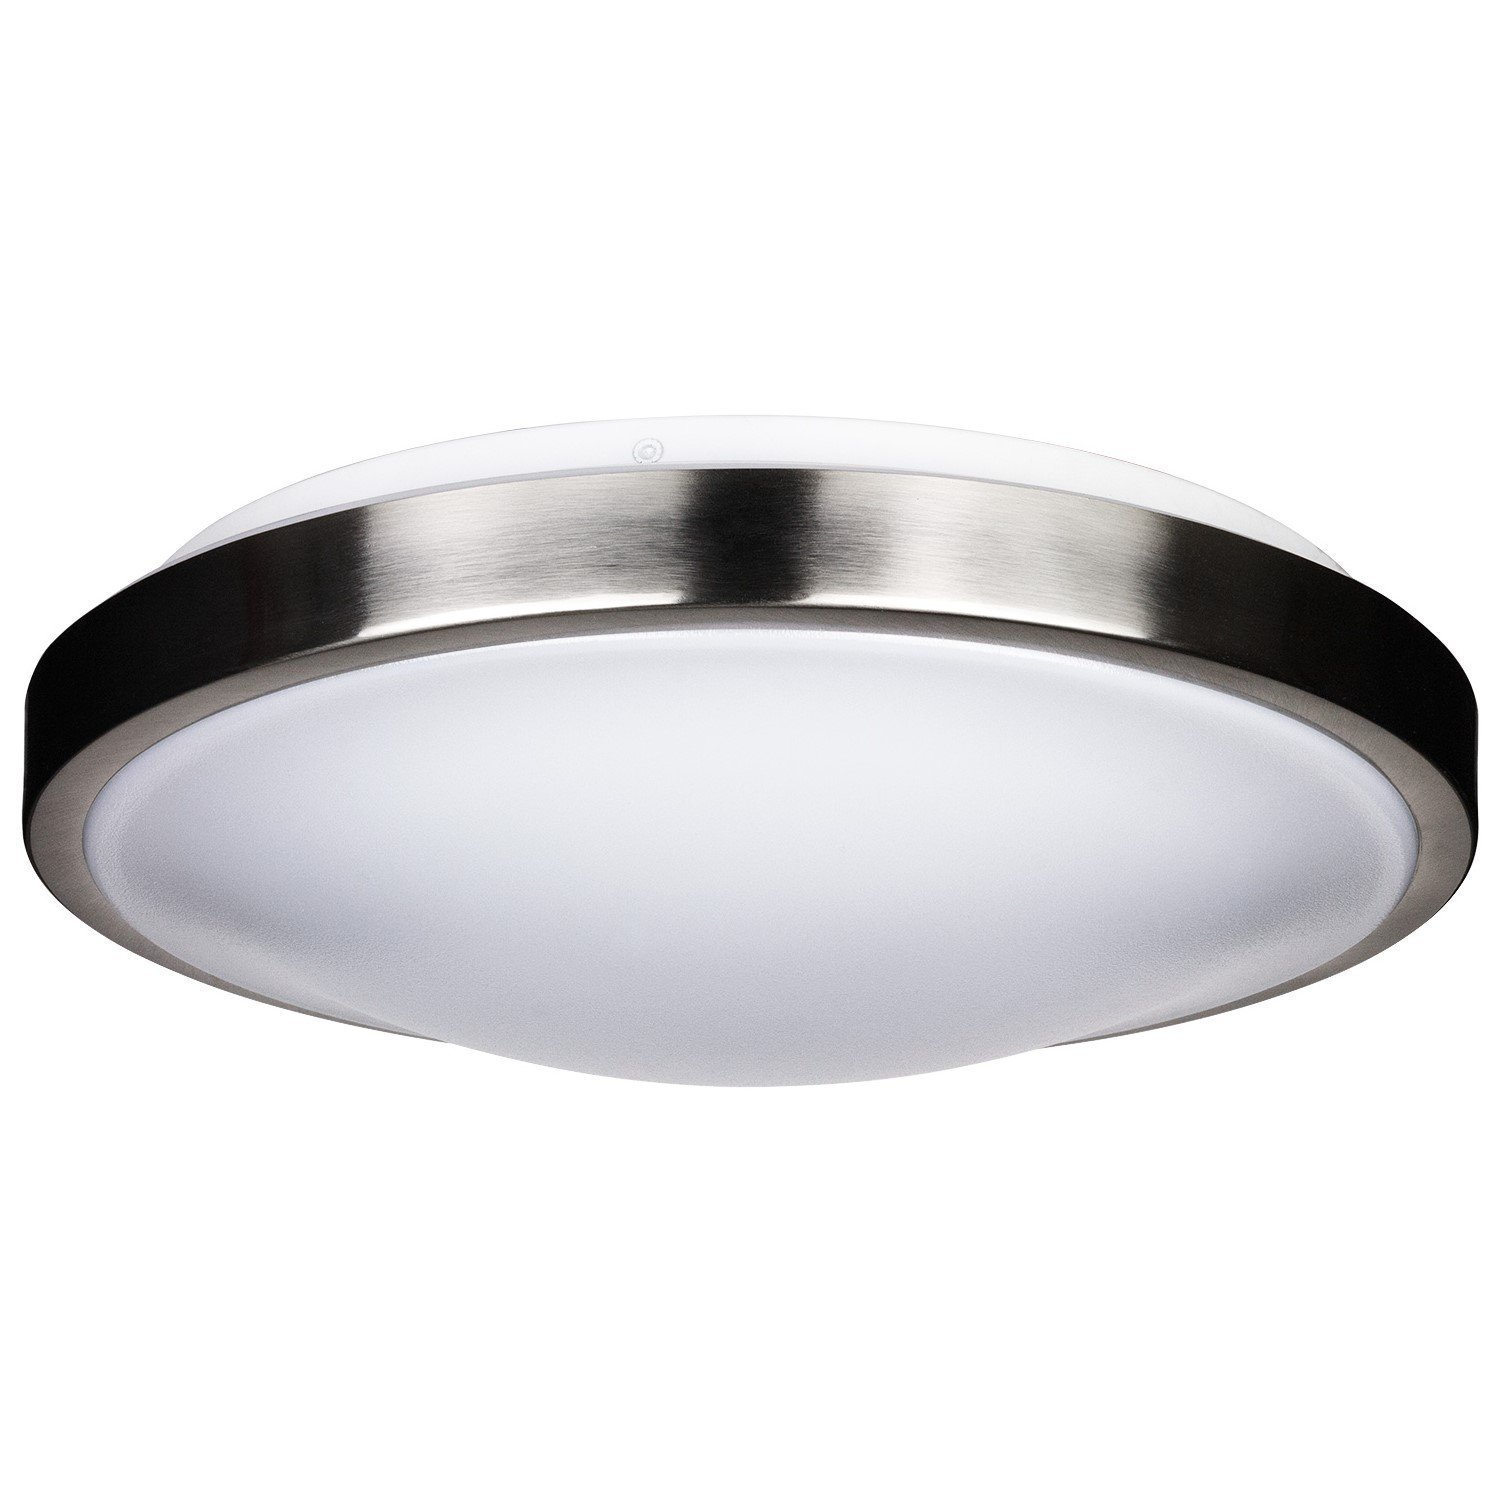 LB72115 LED Flush Mount Ceiling Lighting, Antique Brushed Nickel, 12-Inch 4000K Cool White, 1050 Lumens, Energy Star Dimmabel by Light Blue USA